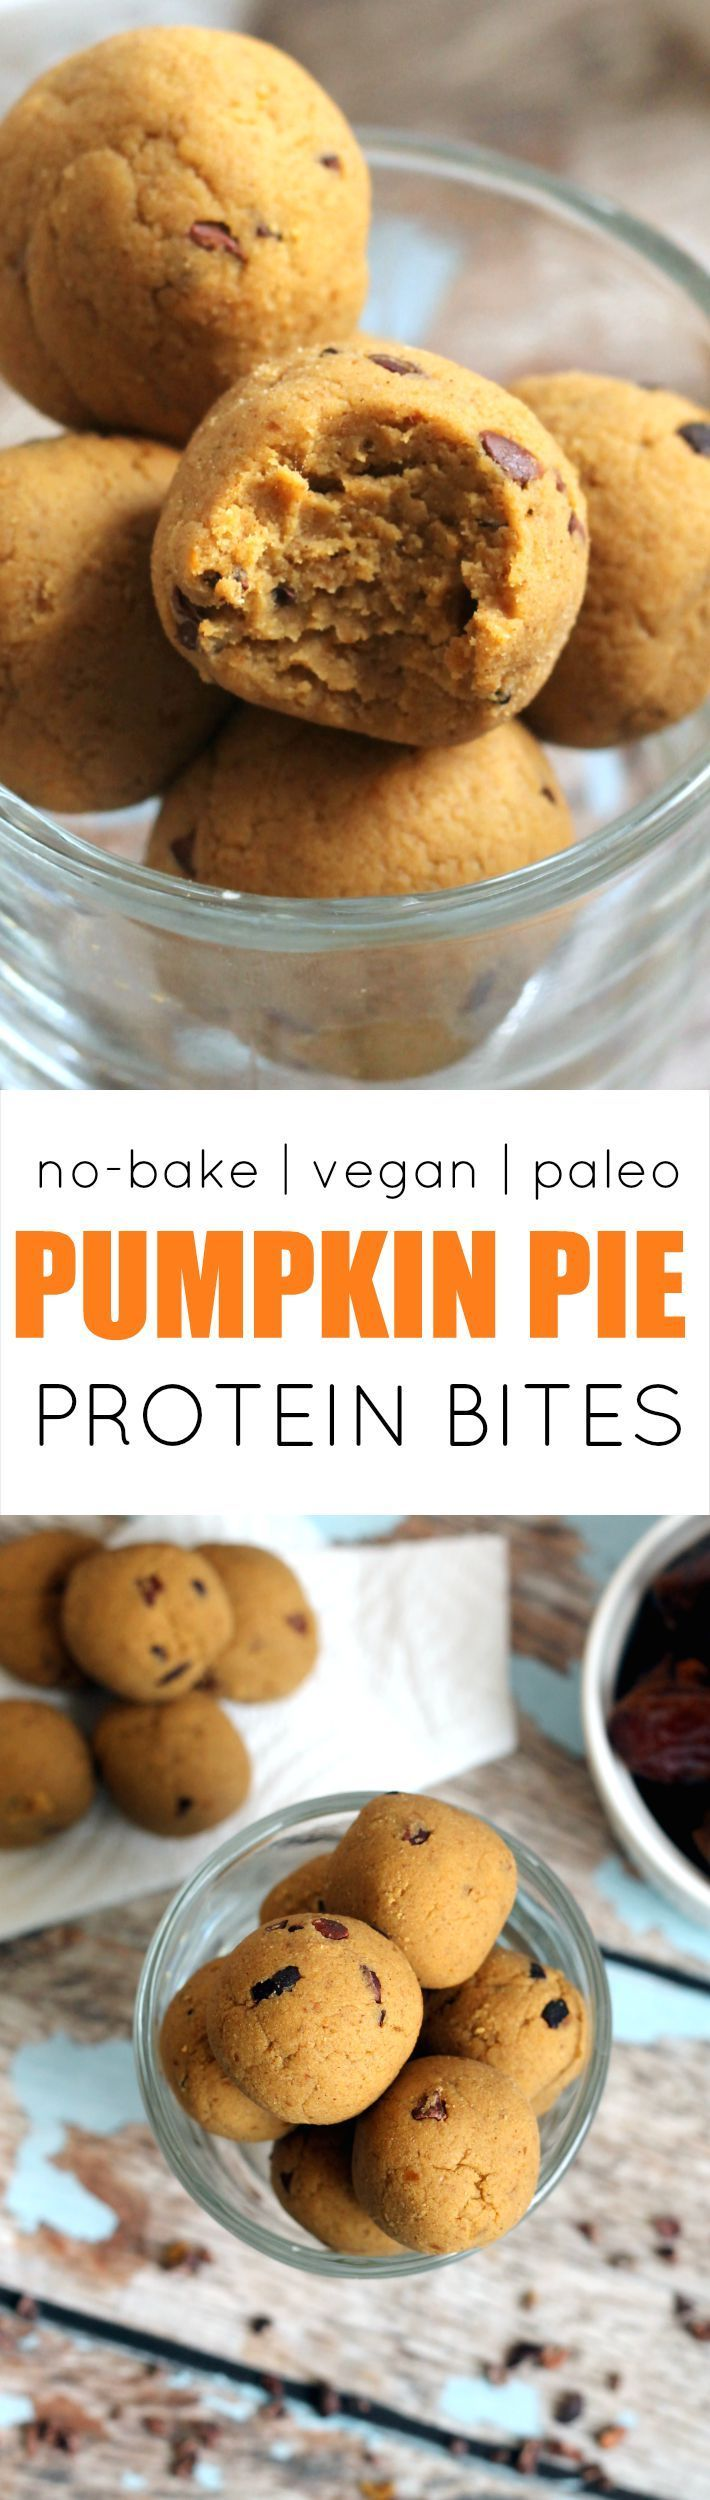 These easy, cakey Pumpkin Pie Protein No-Bake Bites have the flavor of pumpkin pie, but are secretly packed with protein and fiber! Vegan, gluten-free, paleo, and kid-friendly.